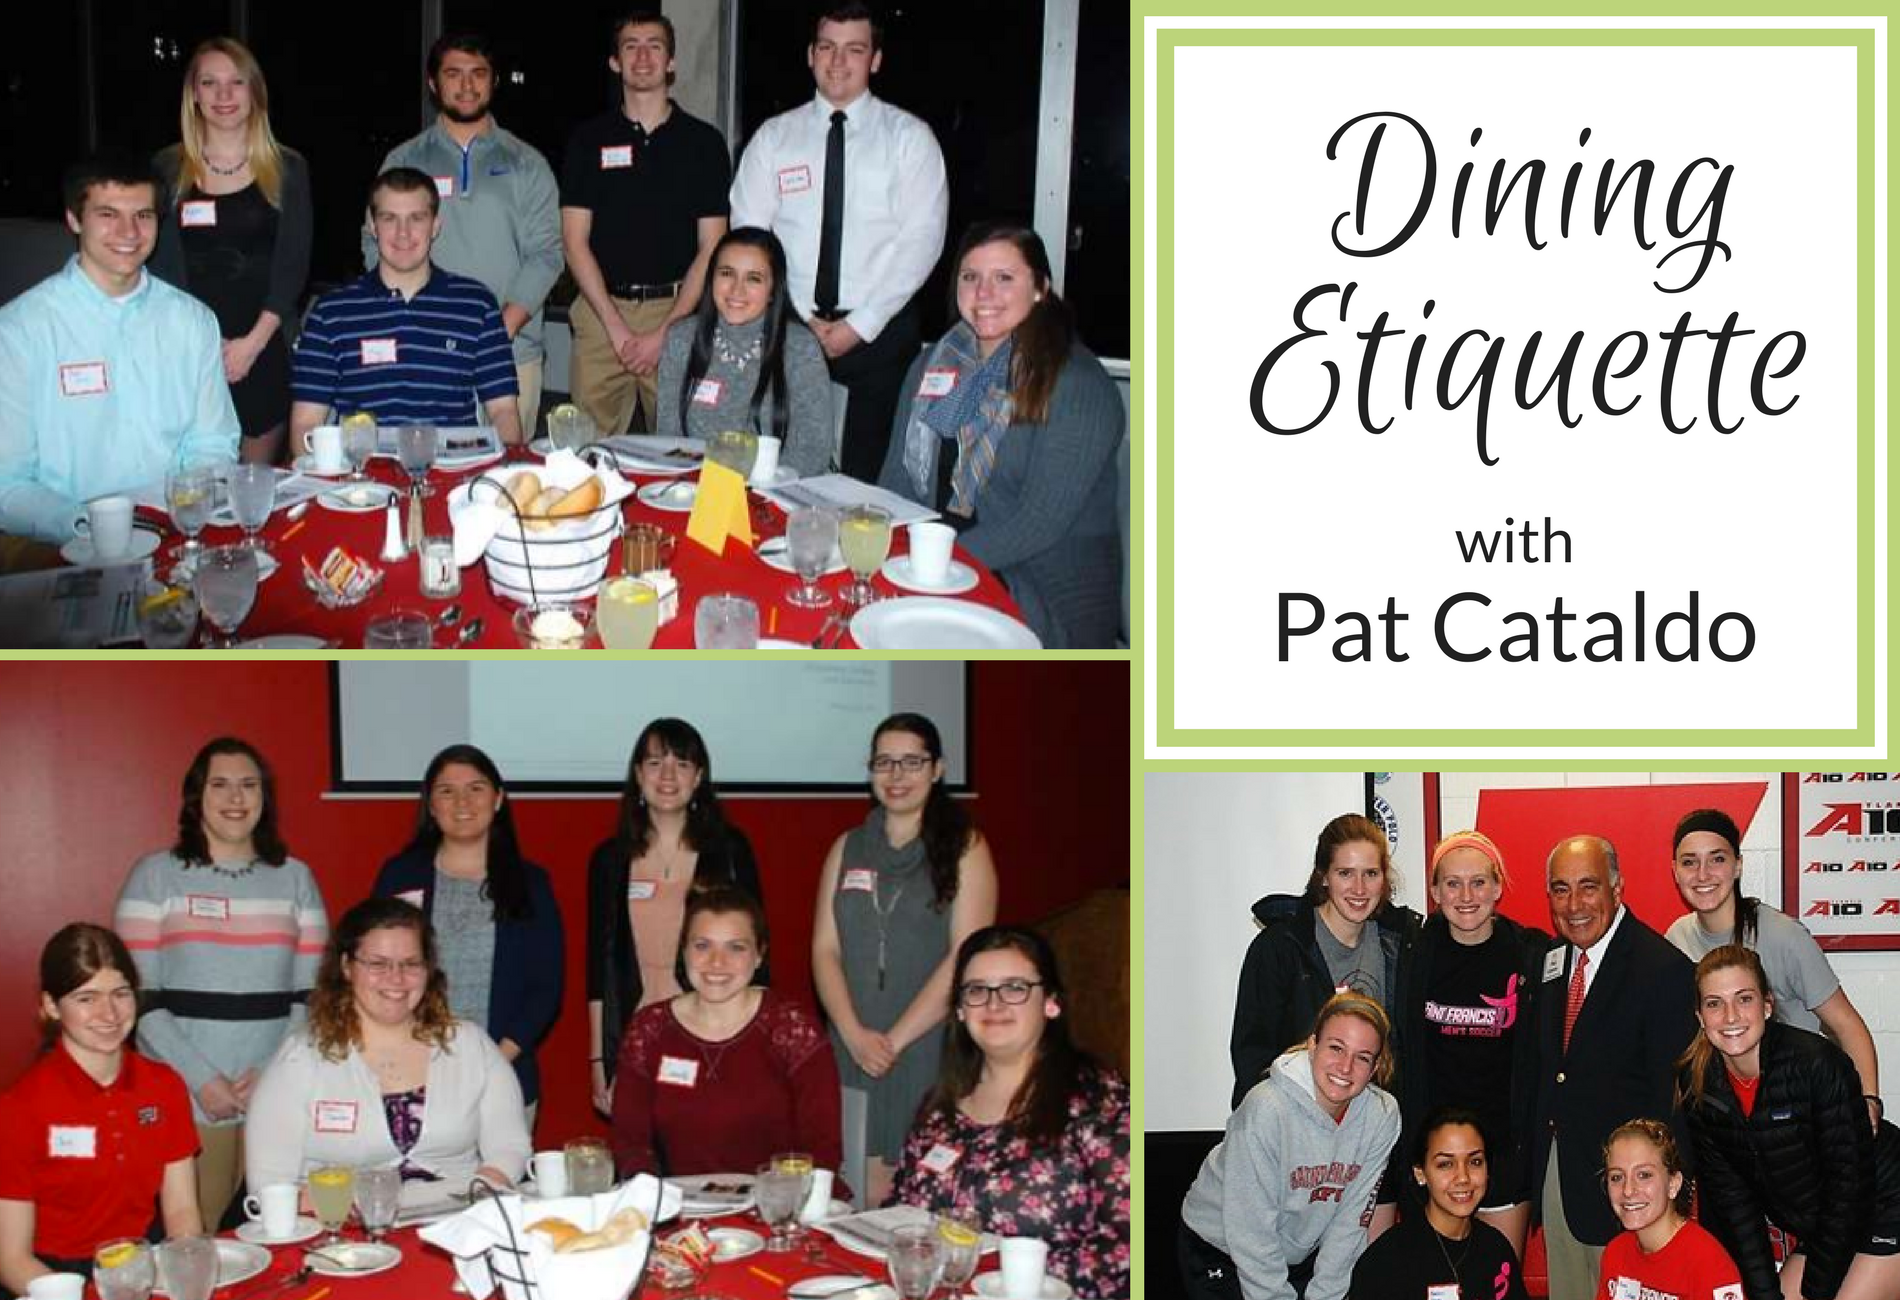 Etiquette with Pat Cataldo